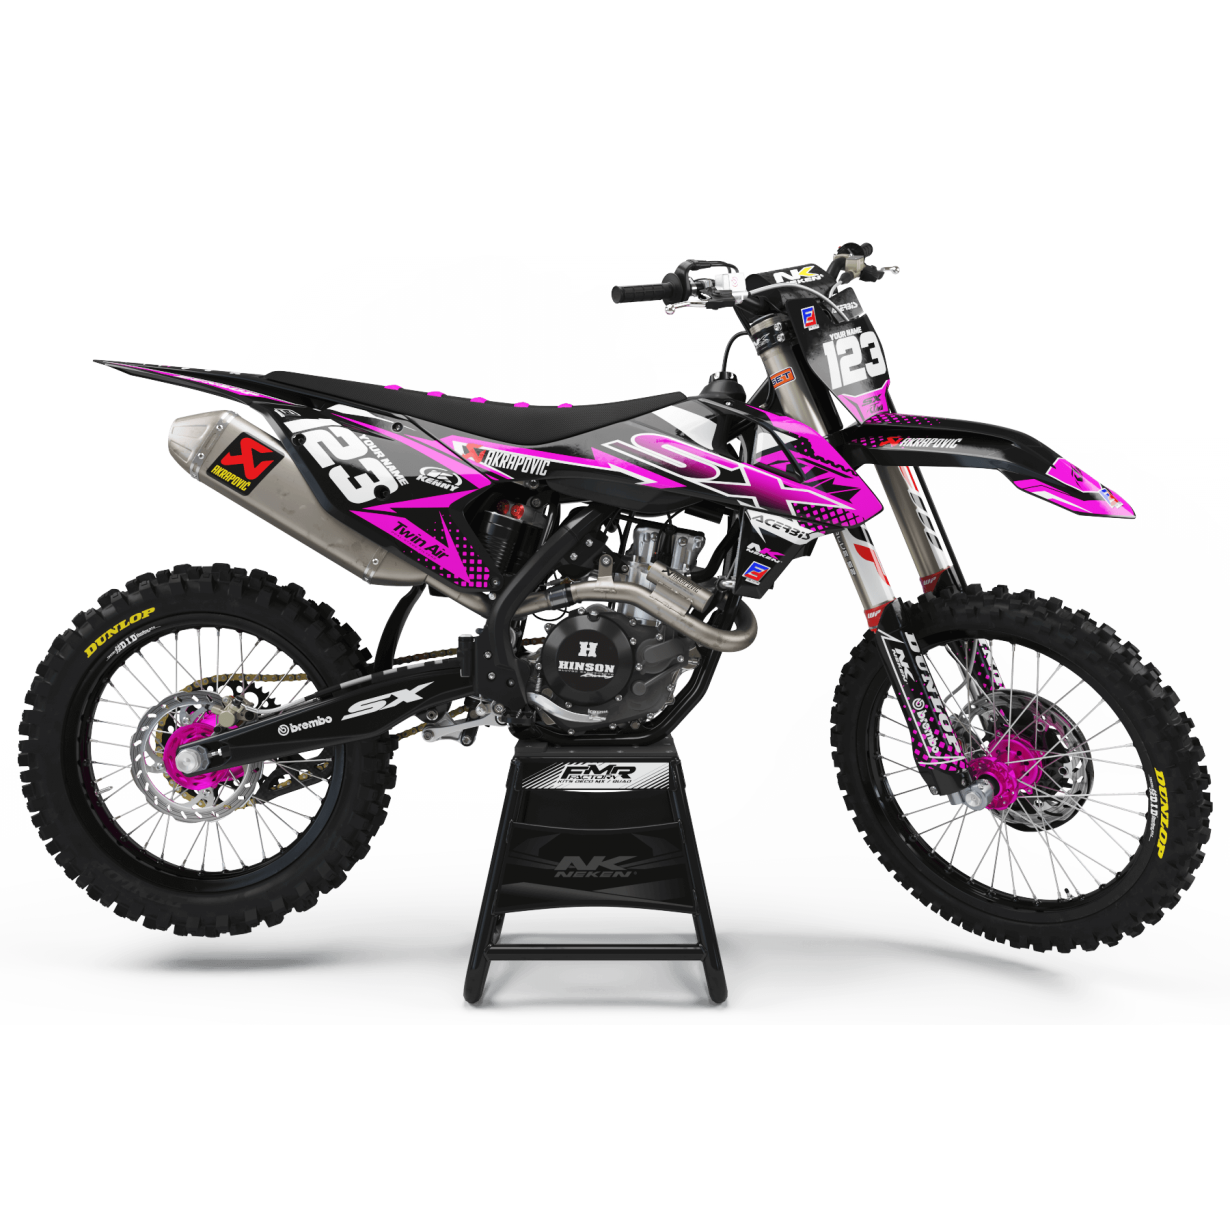 Kit déco Perso FACTORY ktm ENERGY MA33C3 rose